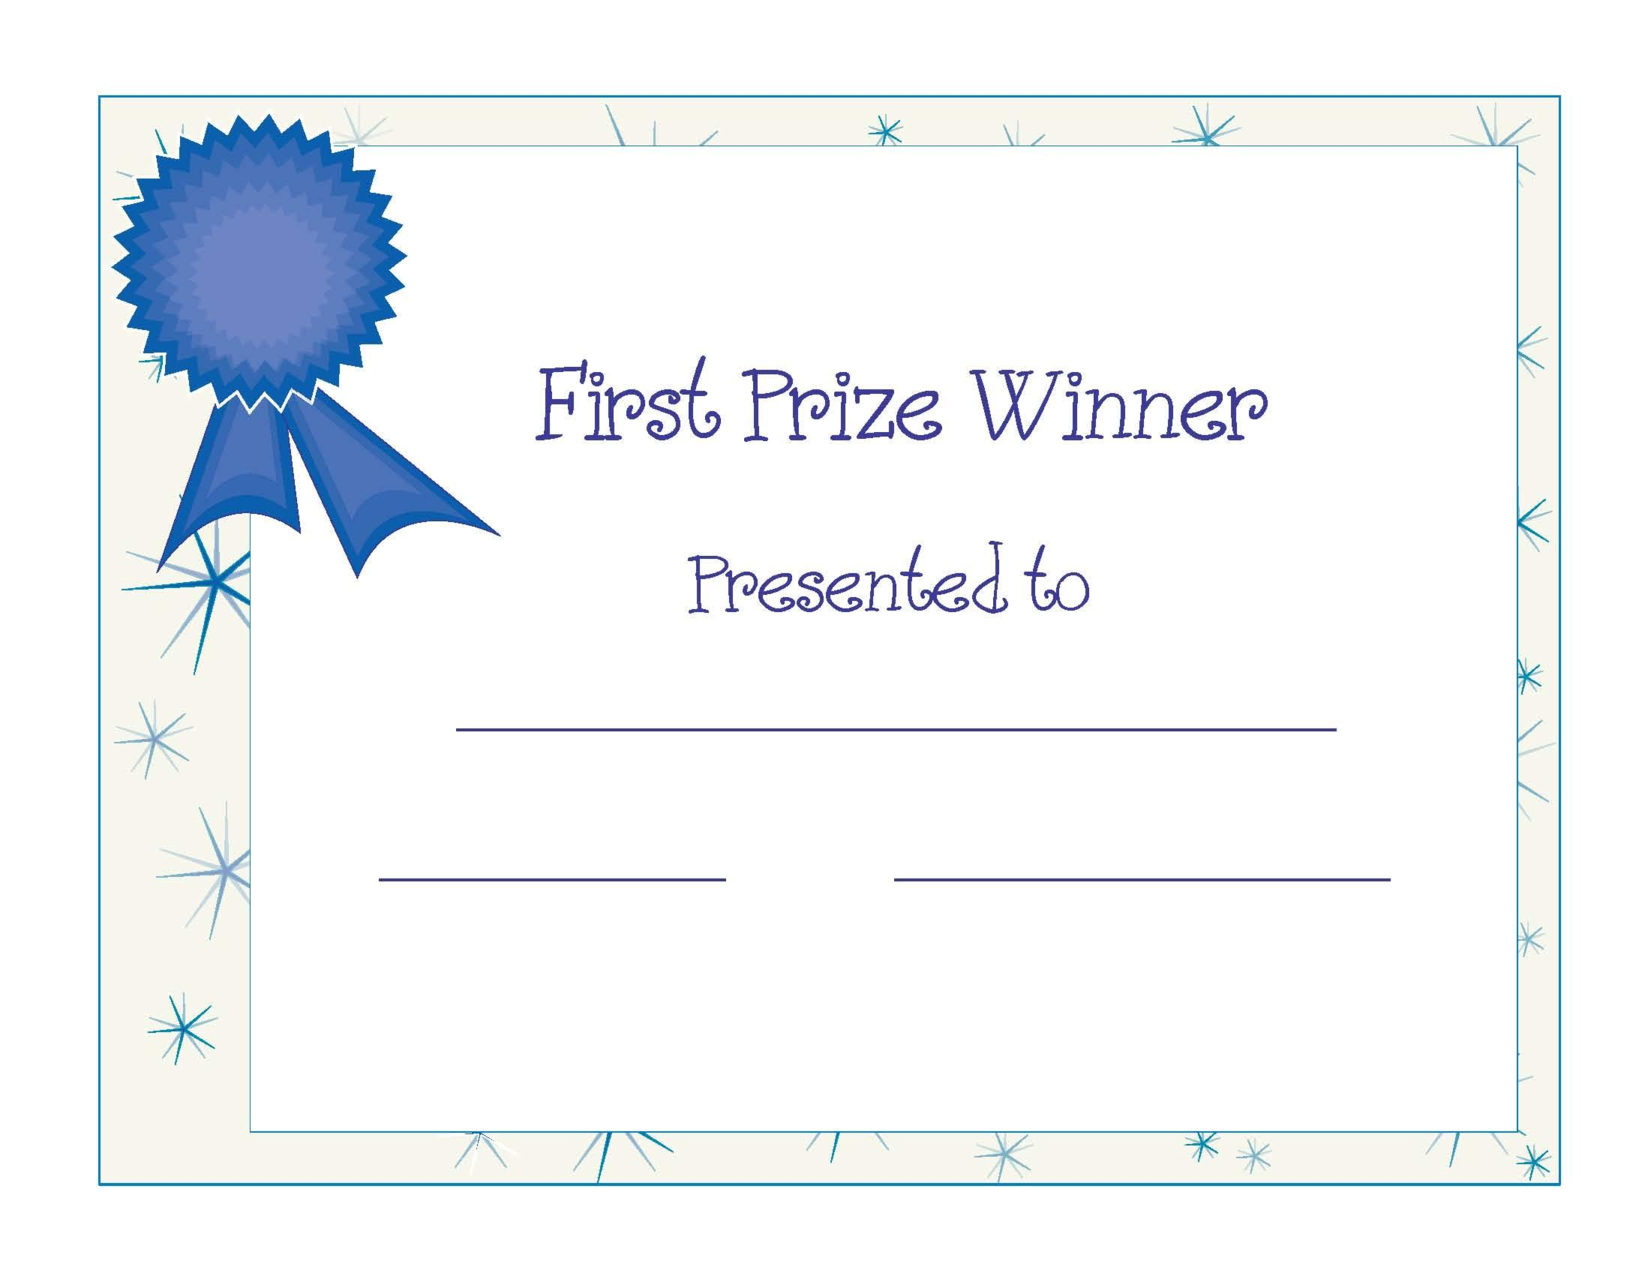 Free Printable Blank Certificate Templates Free Printable Throughout Free Printable Blank Award Certificate Templates